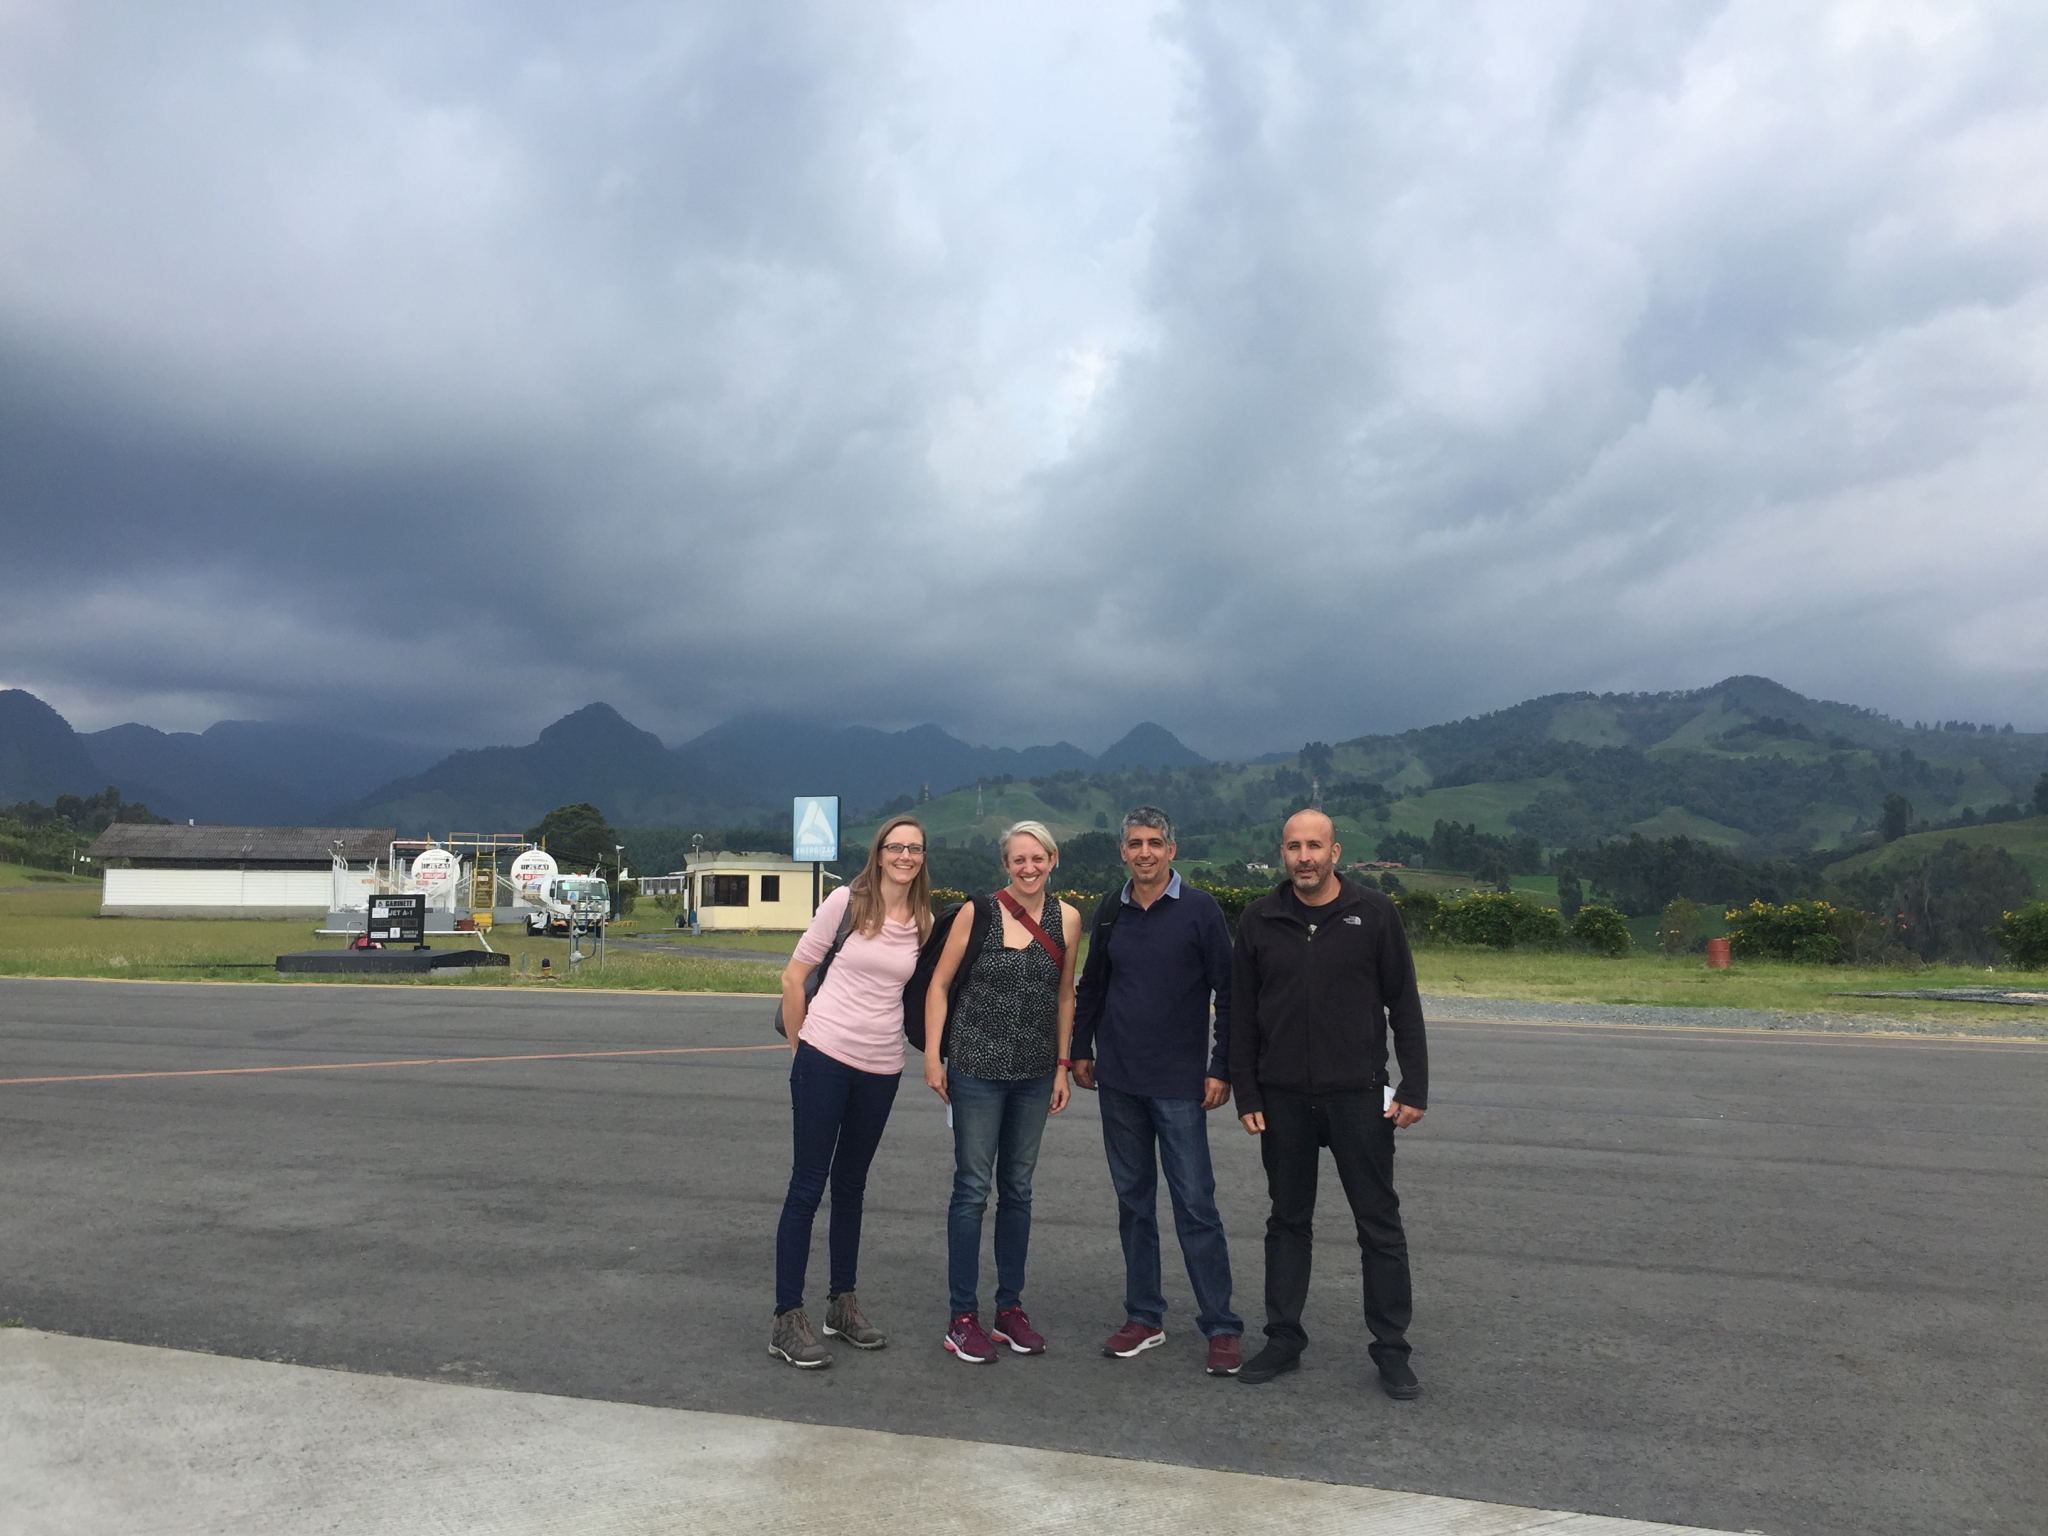 In February, Lara Wagner, Christy Till, Gaspar Monsalve, and Agustin Cardona traveled to Colombia to prepare for the upcoming MUSICA project